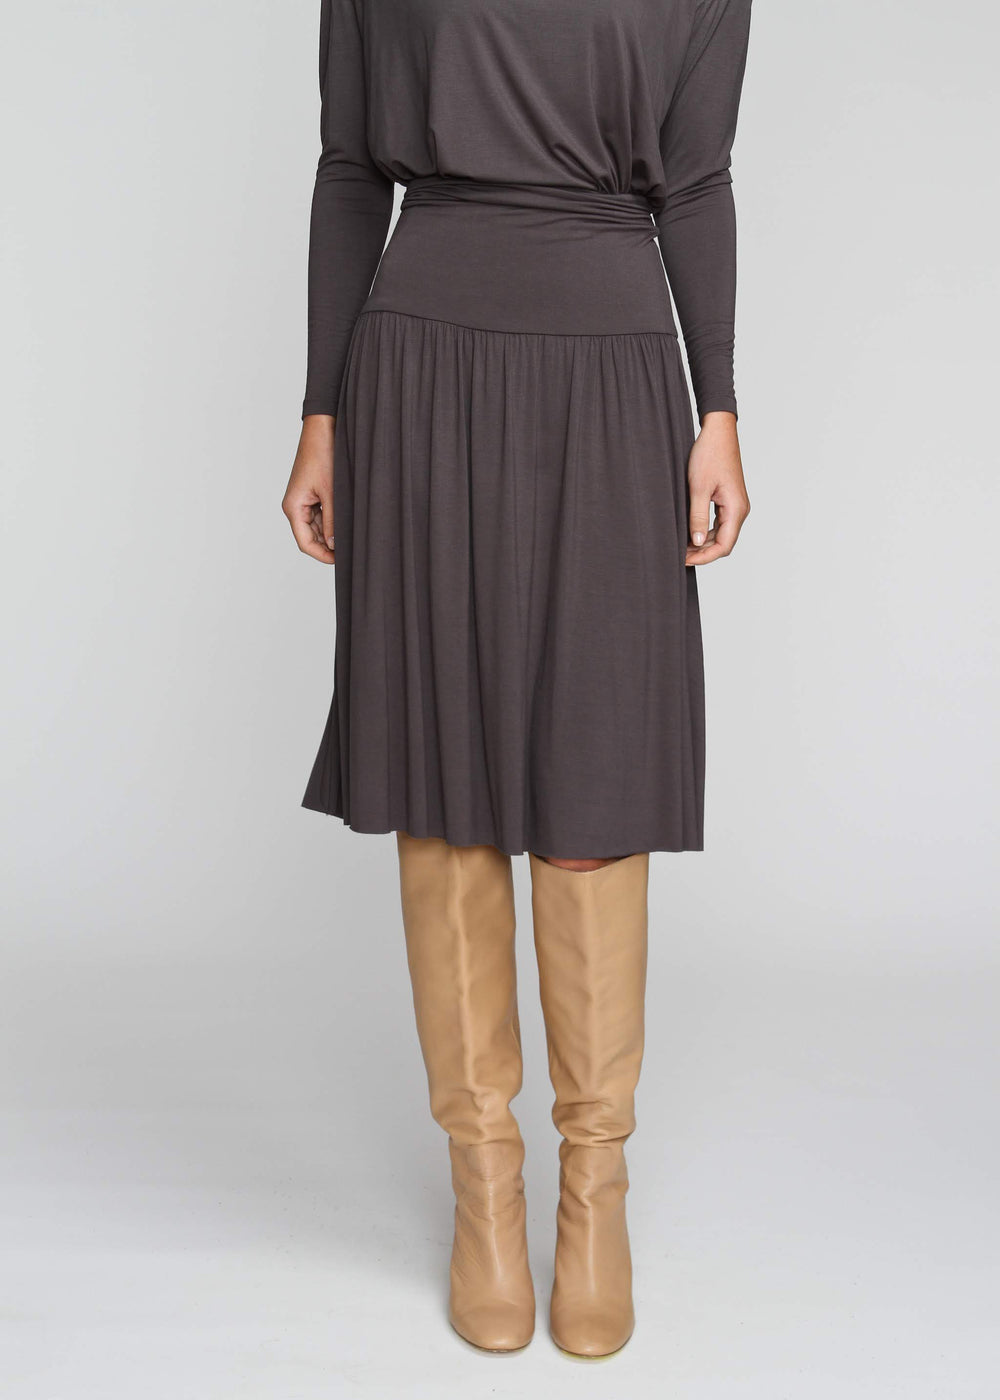 Band Skirt - Indigo Grey - The Frock NYC